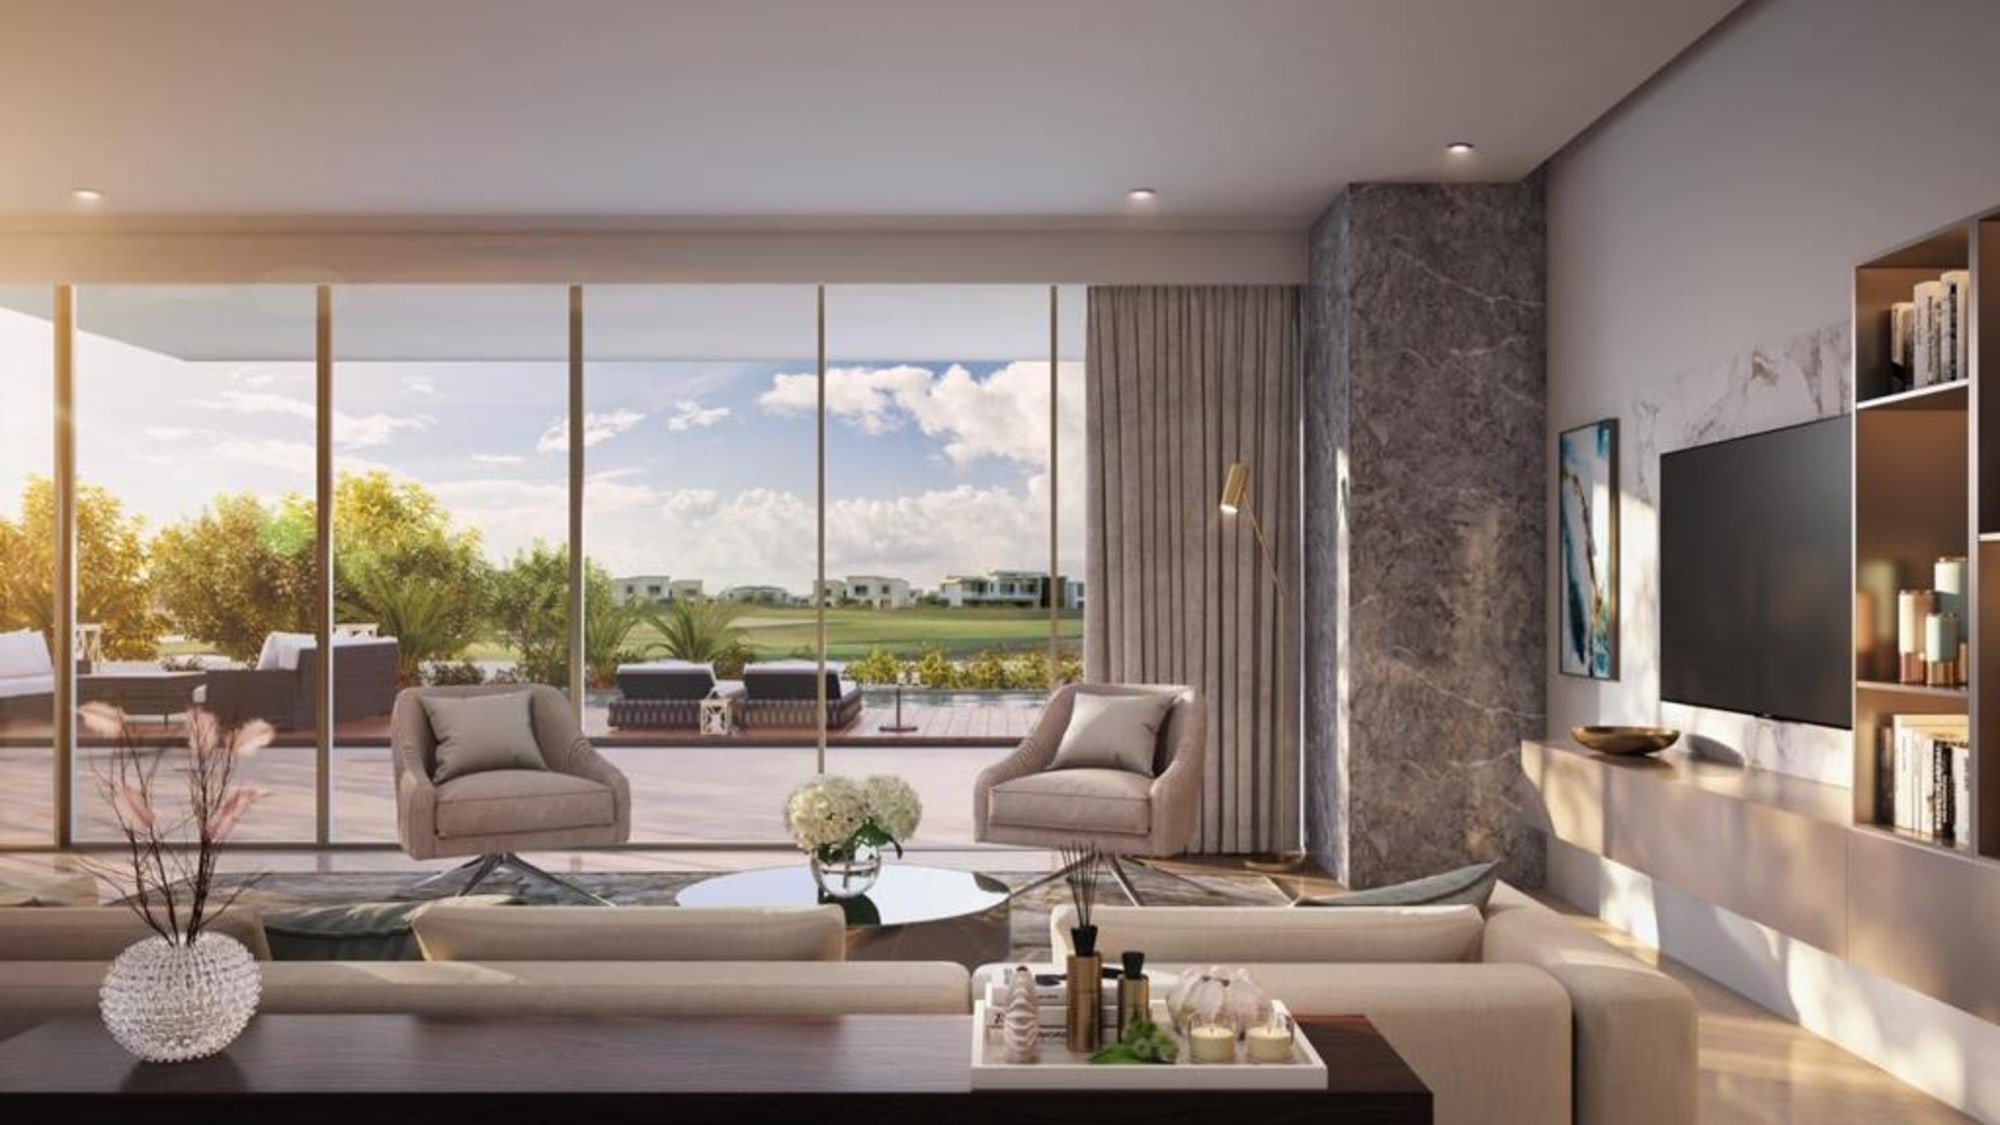 6 Bedroom | New Luxury Project | 0% Commision